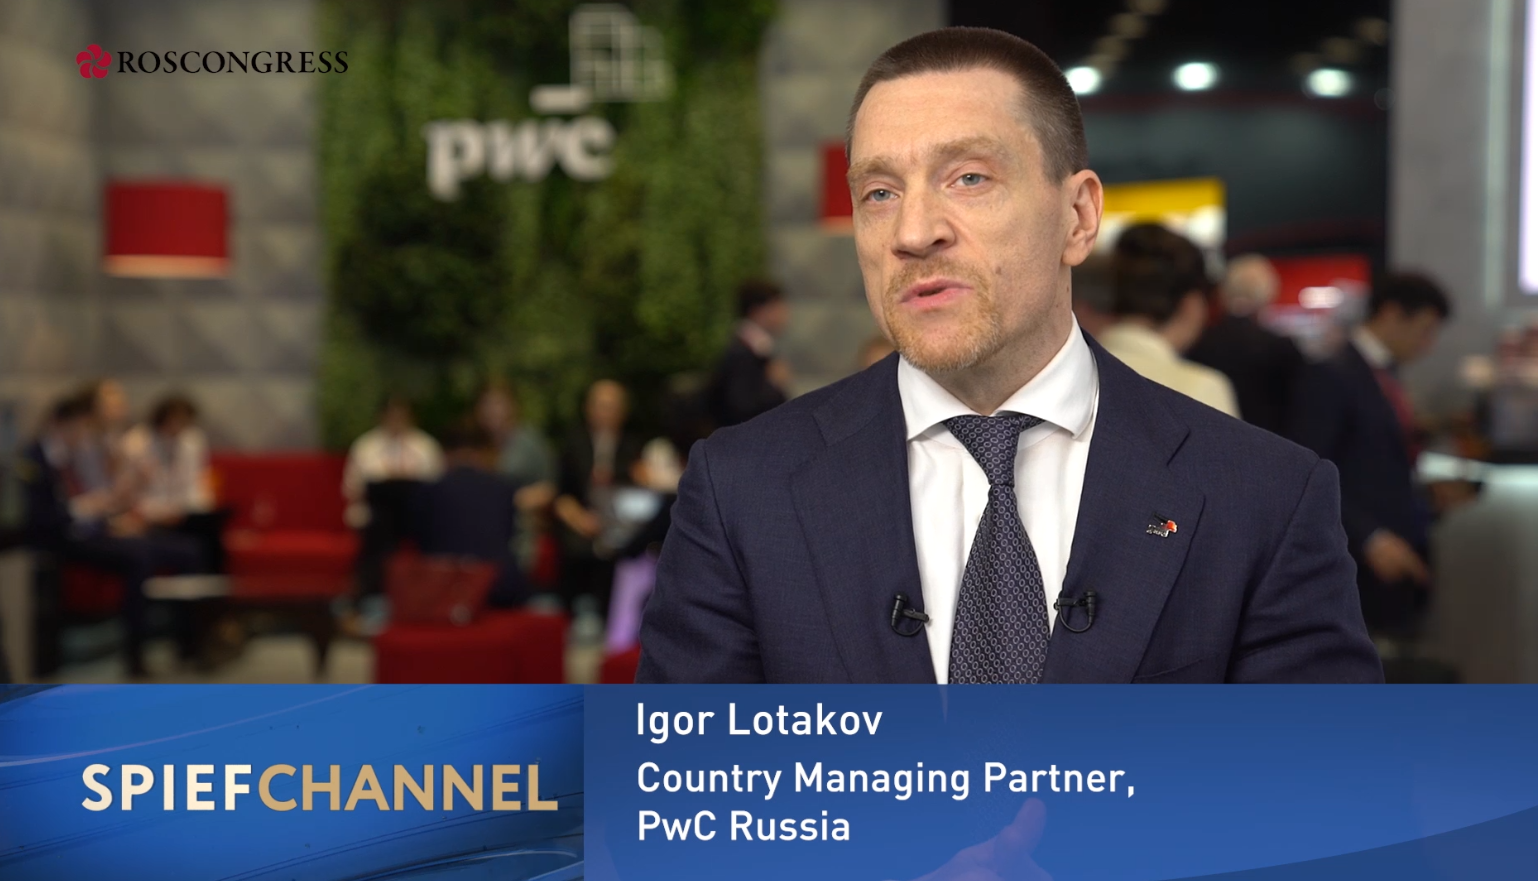 Igor Lotakov, Country Managing Partner, PwC Russia